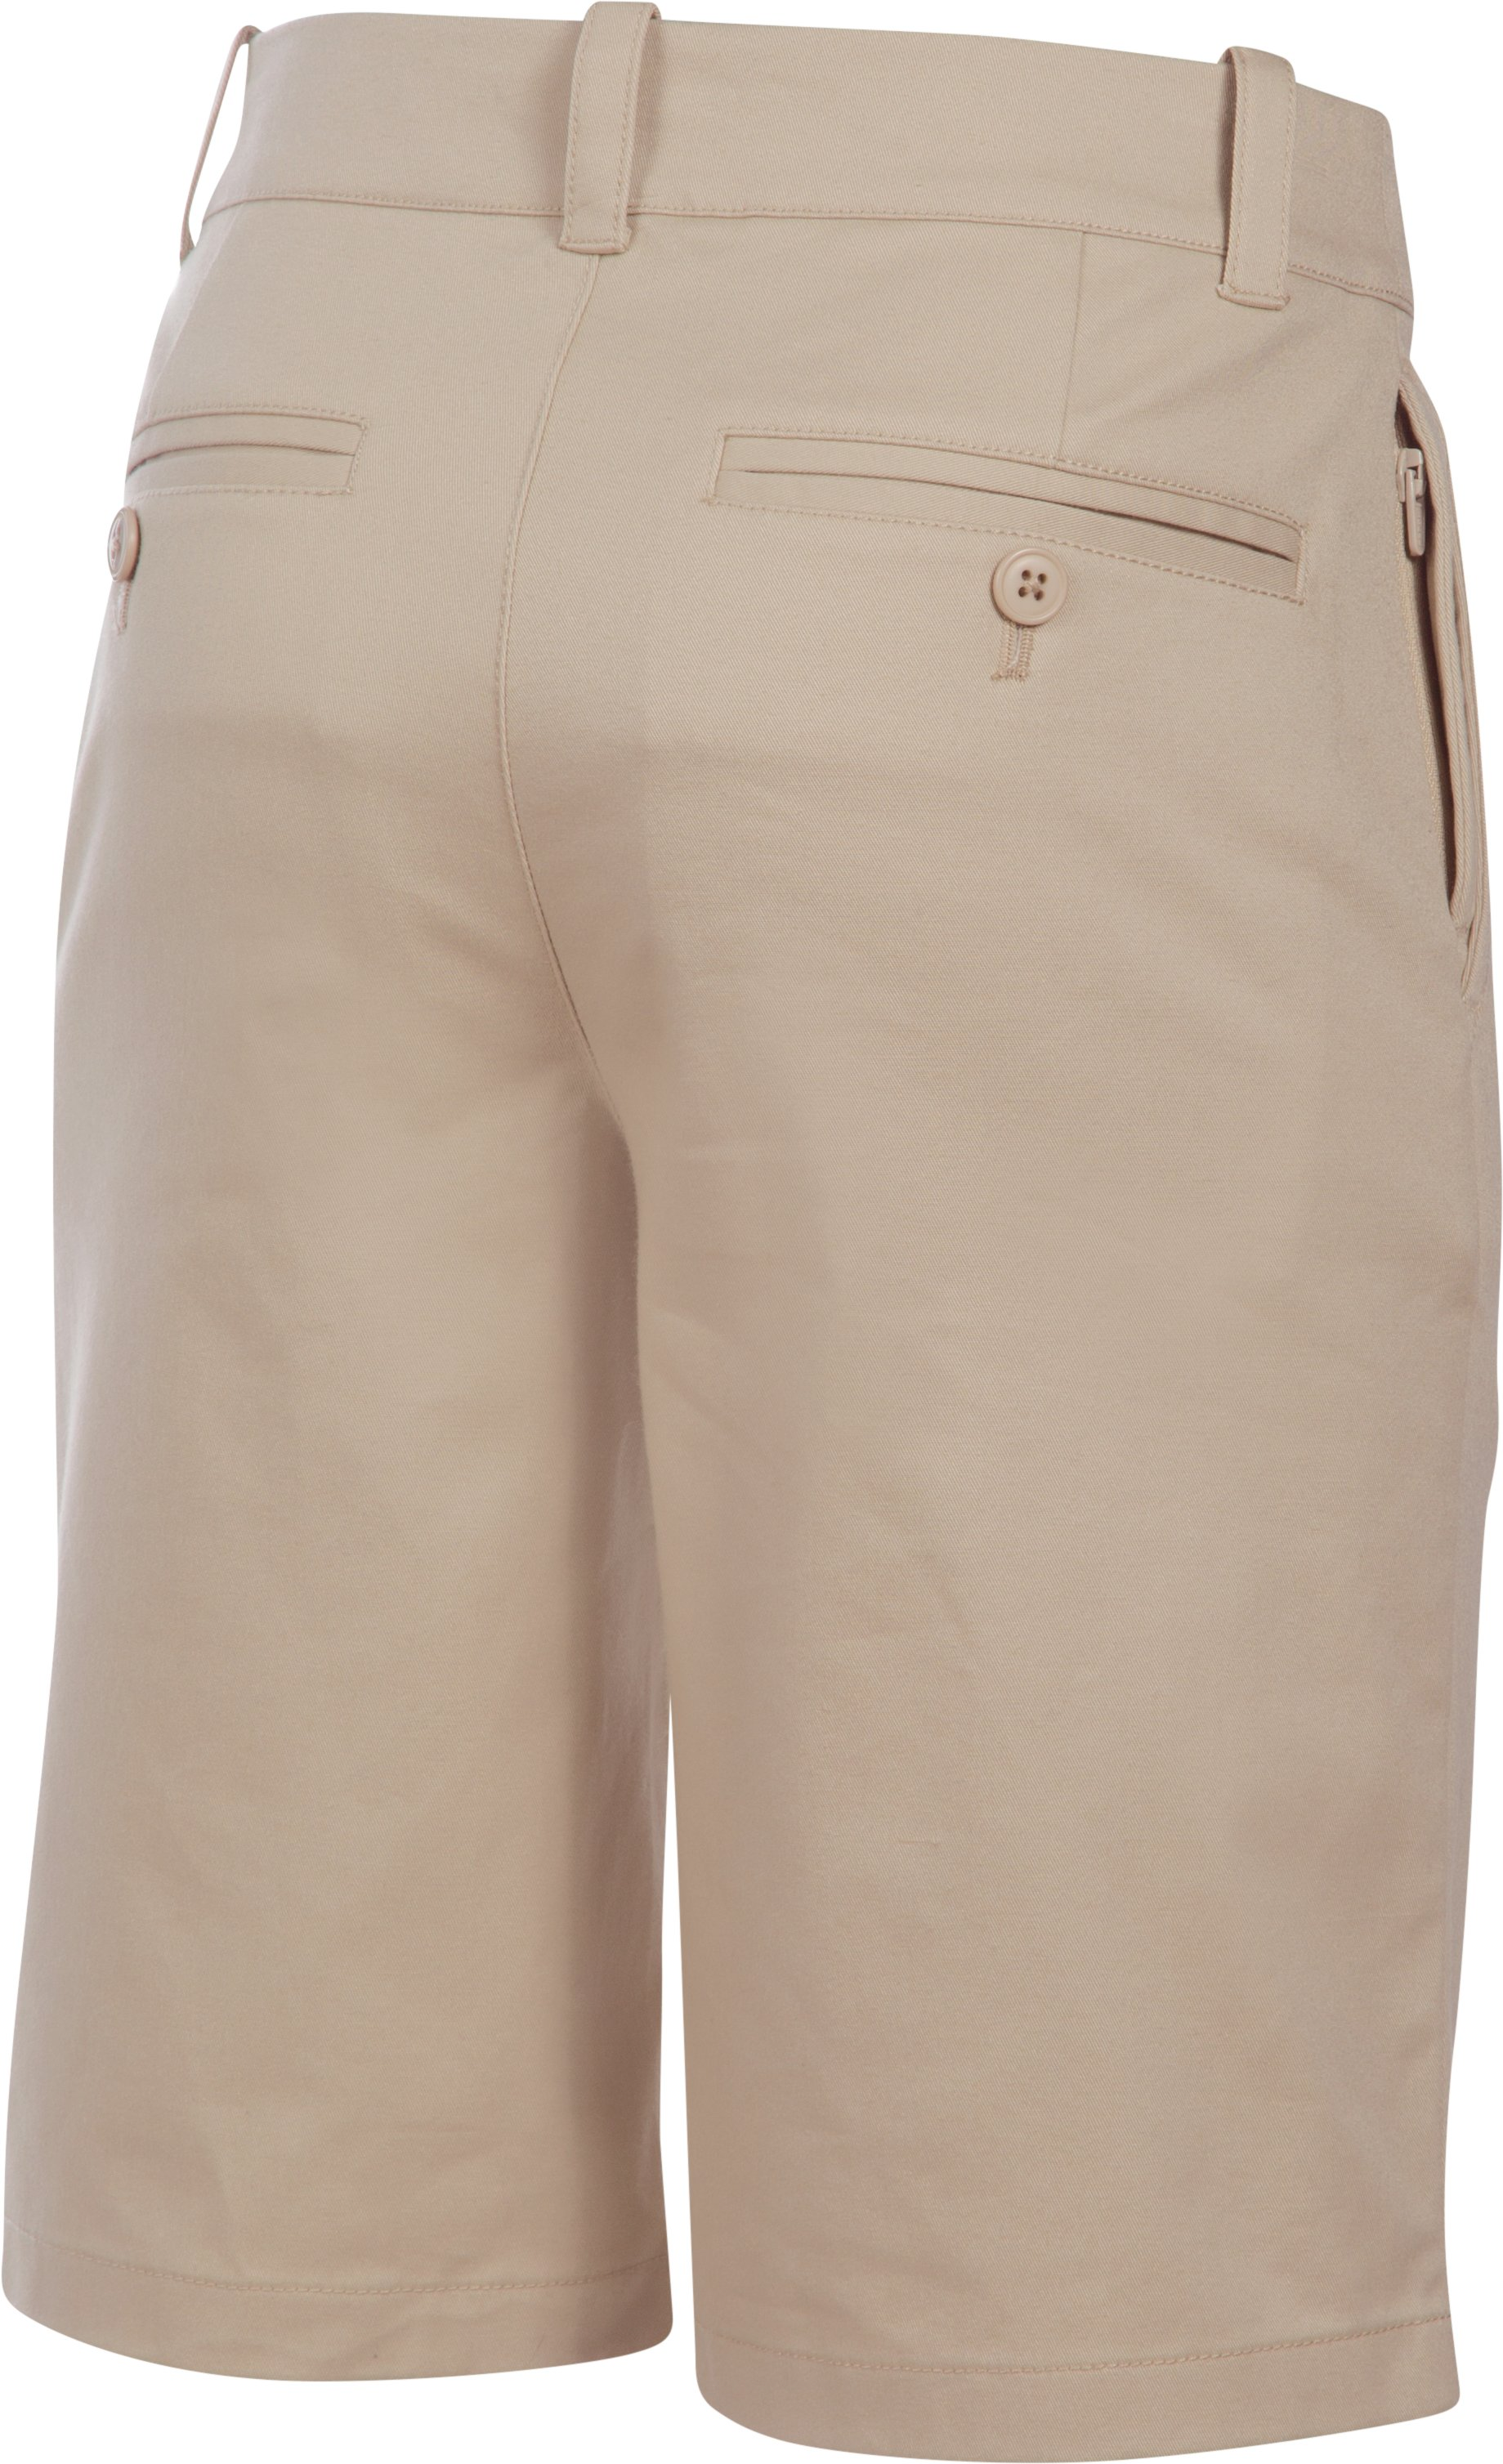 Boys UA Uniform Chino Shorts, Desert Sand,